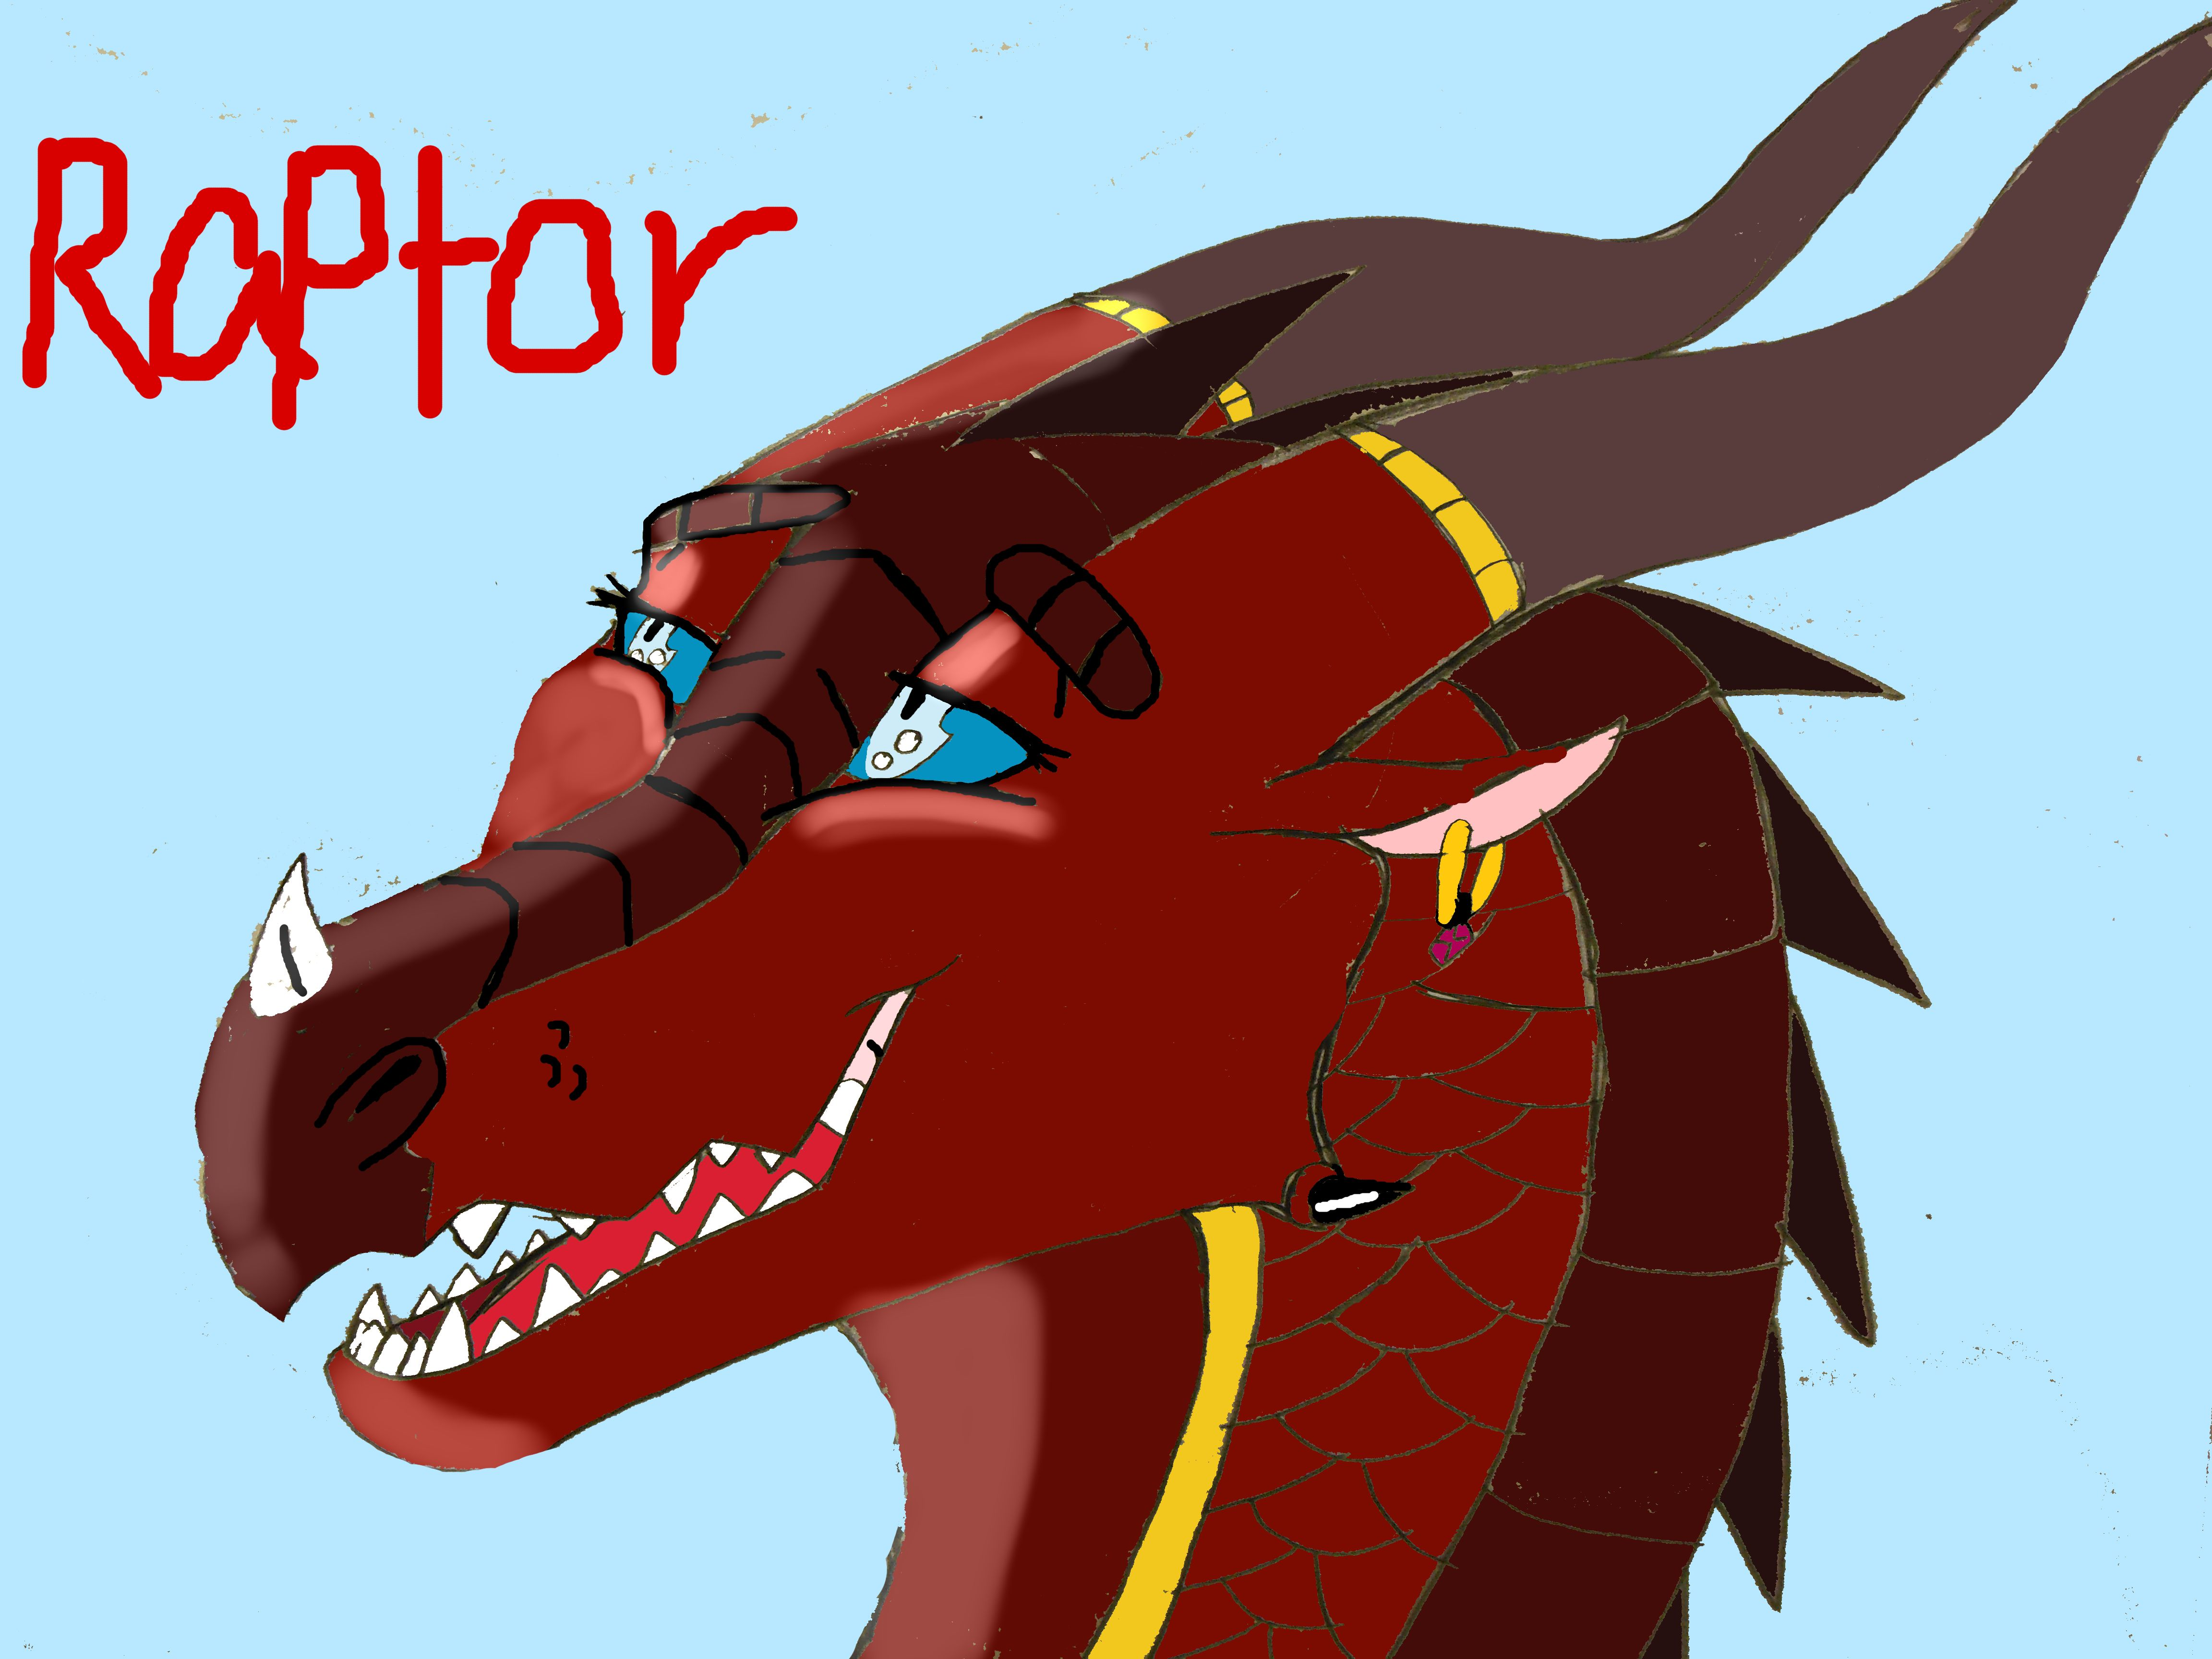 My new character Raptor the skywing drawn and created by me Novaeclipse